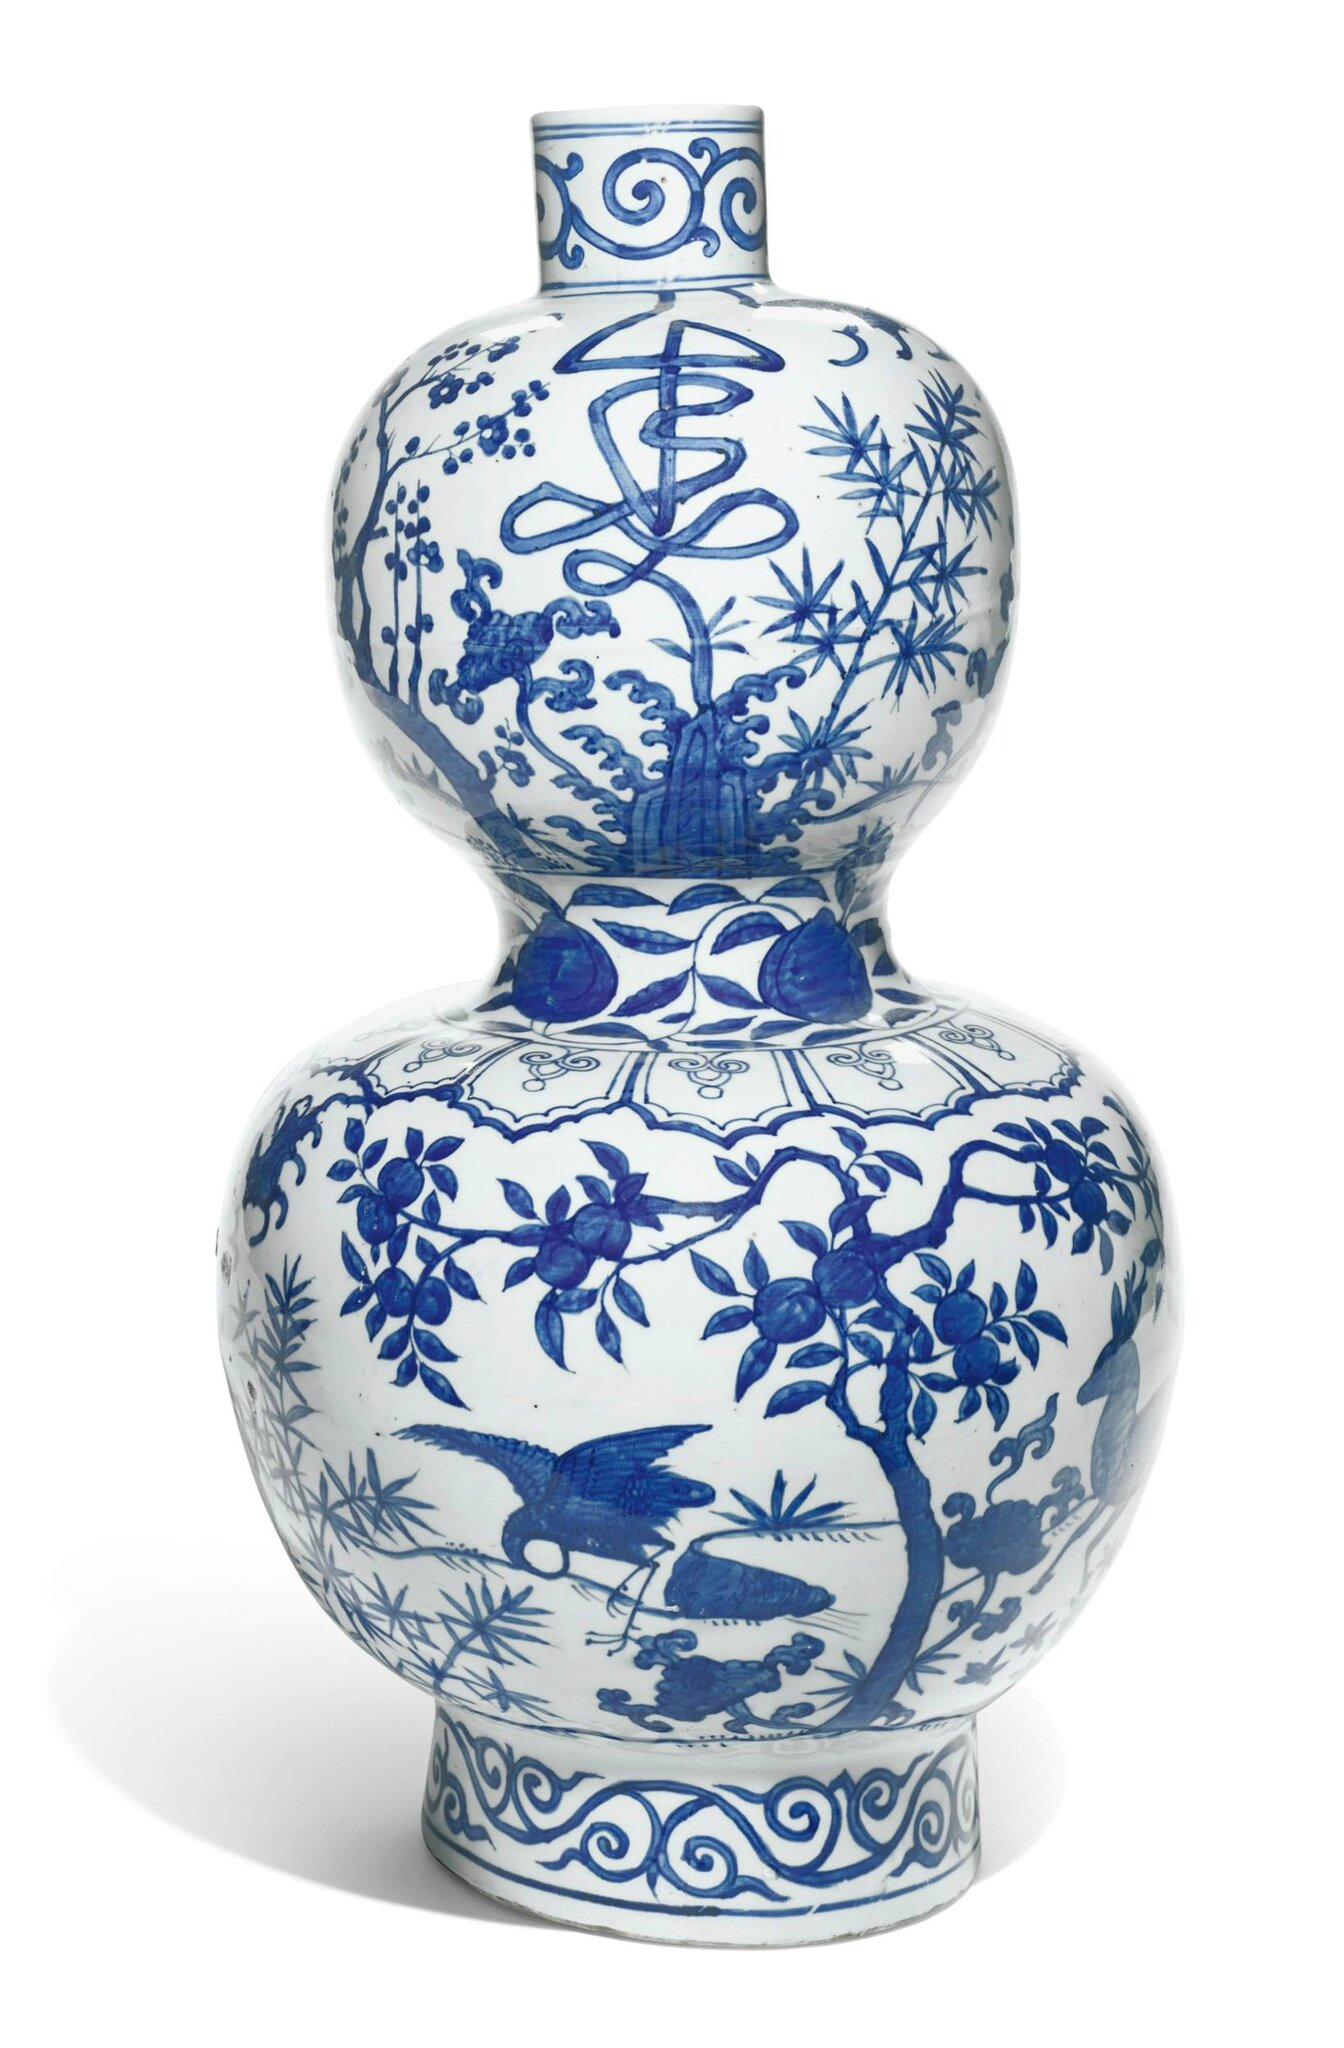 A large blue and white double gourd vase jiajing mark and period a large blue and white double gourd vase jiajing mark and period 1522 1566 reviewsmspy